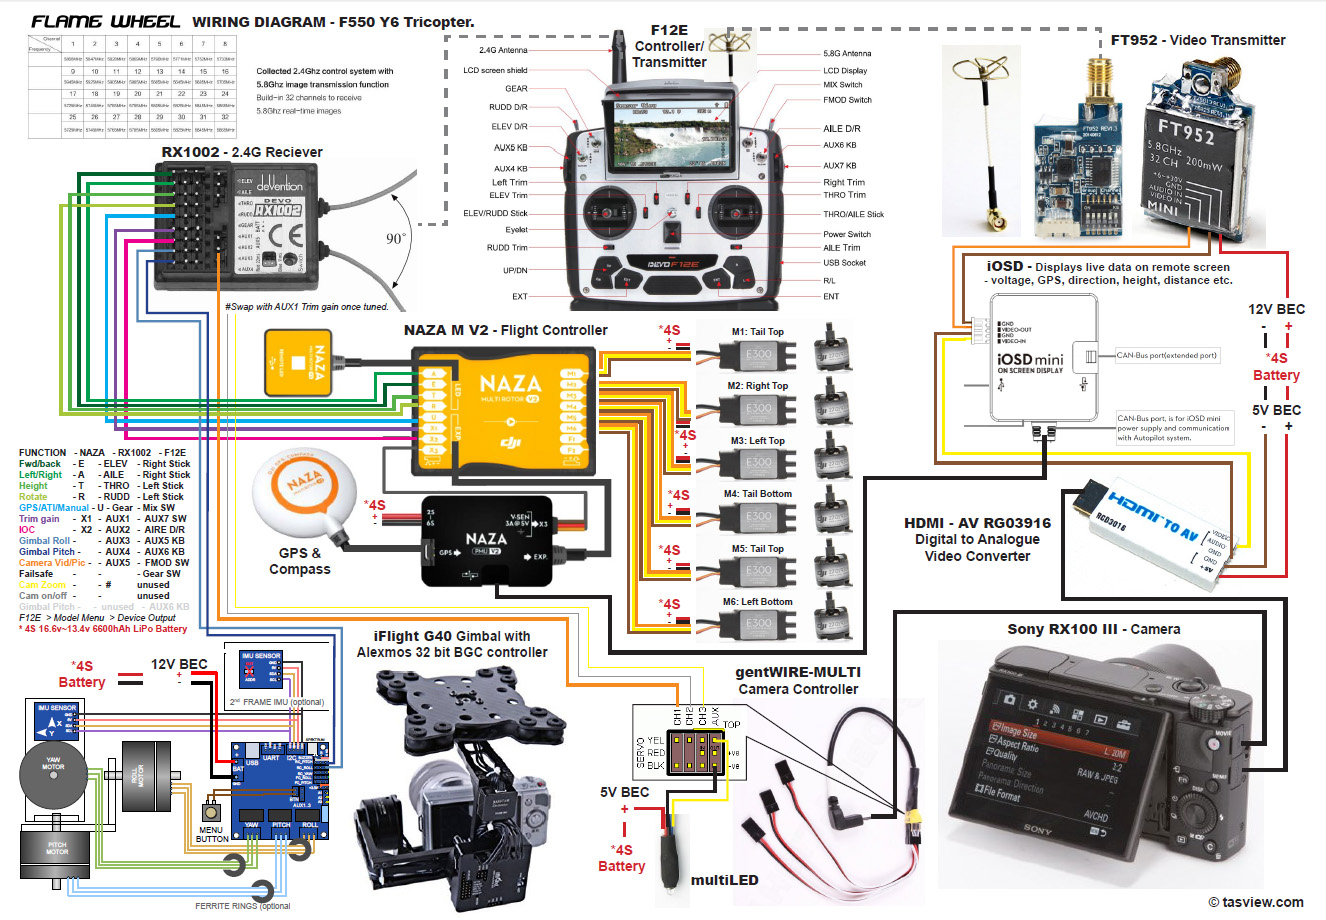 Y6 Wiring Diagram Will Be A Thing Cub Cadet 1315 F500 Rx100 G40 Tasview Rh Wordpress Com 3 Way Switch Automotive Diagrams